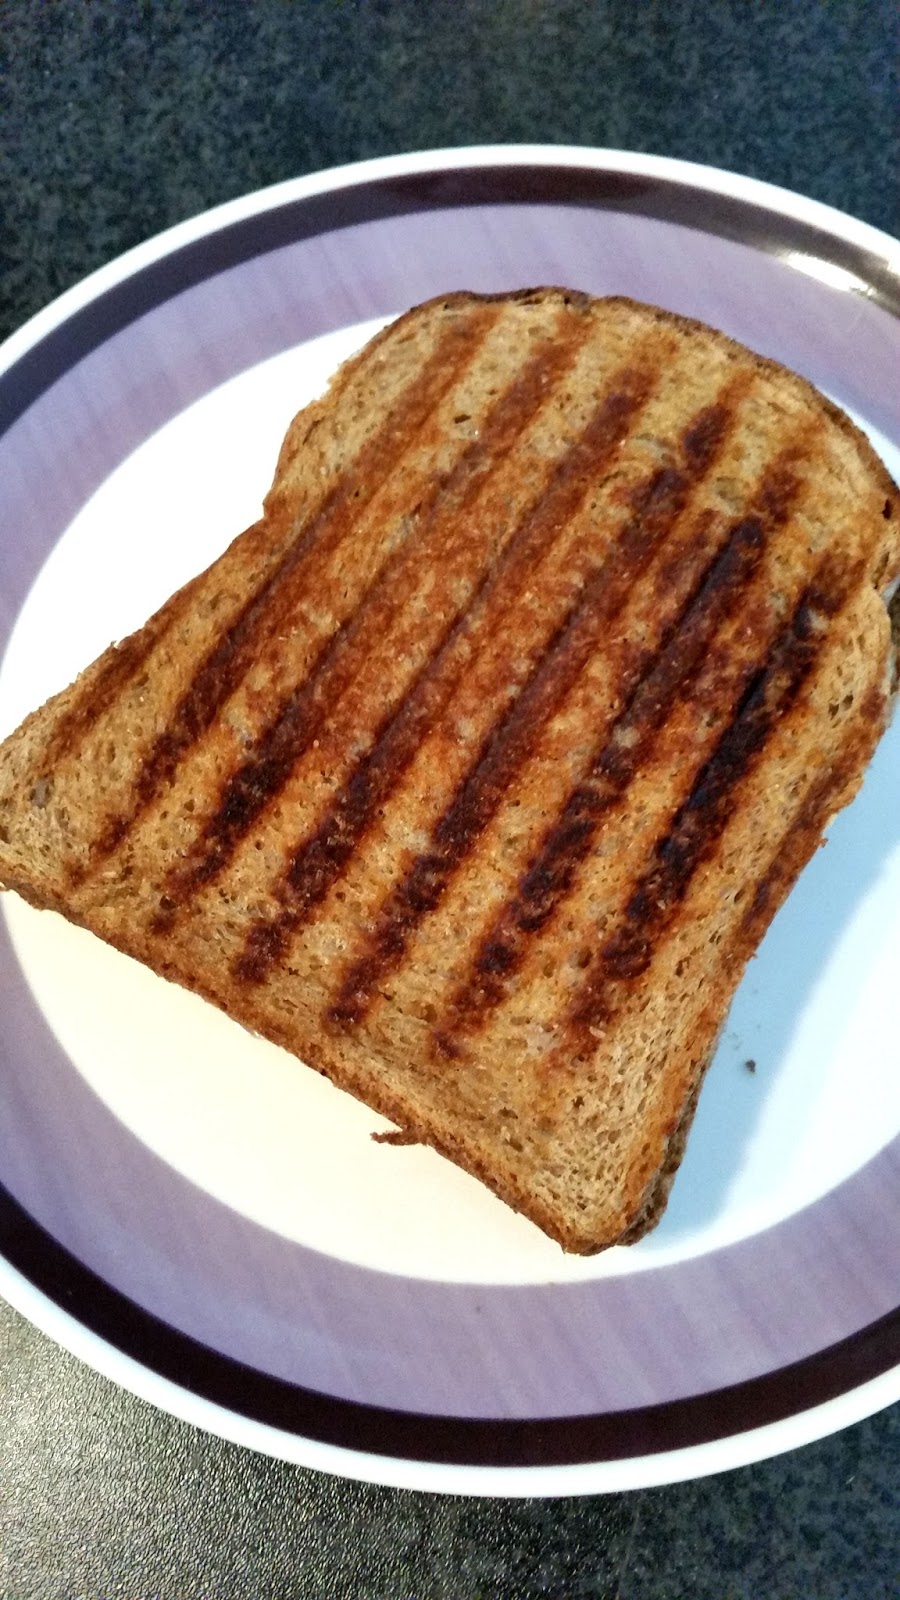 grilled cheese, grilled cheese sandwich